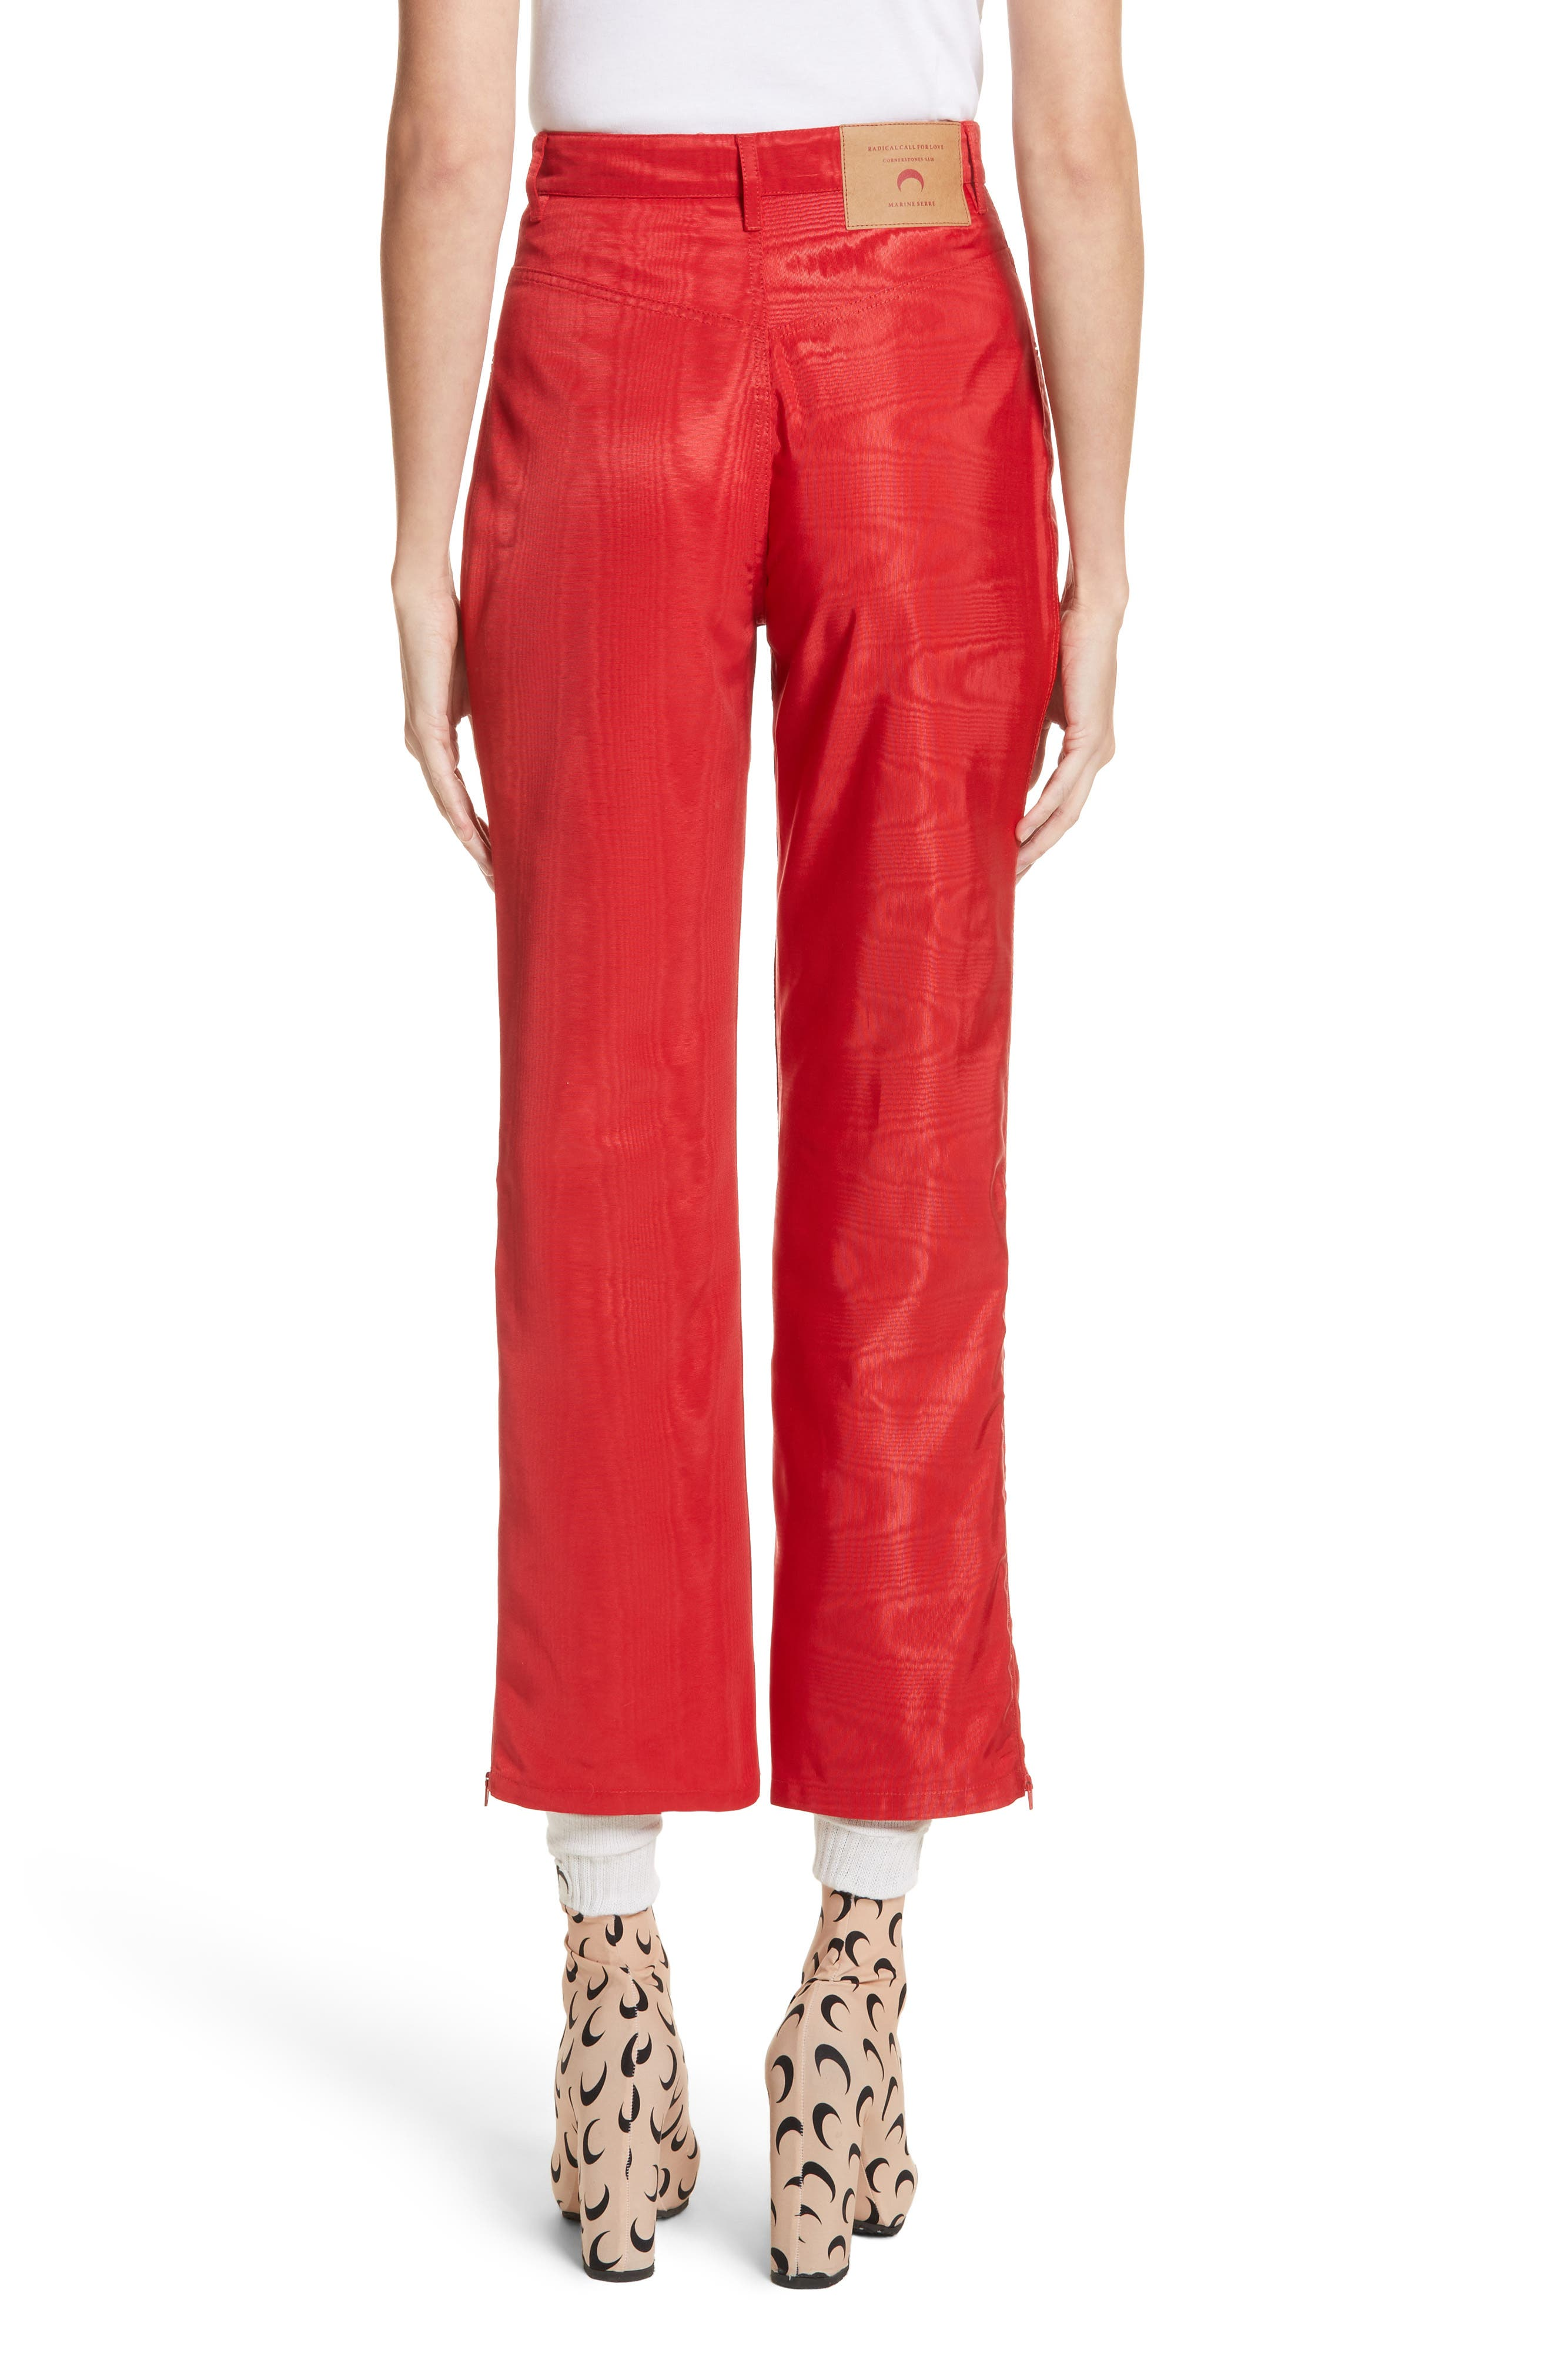 Moiré Trousers,                             Alternate thumbnail 2, color,                             600